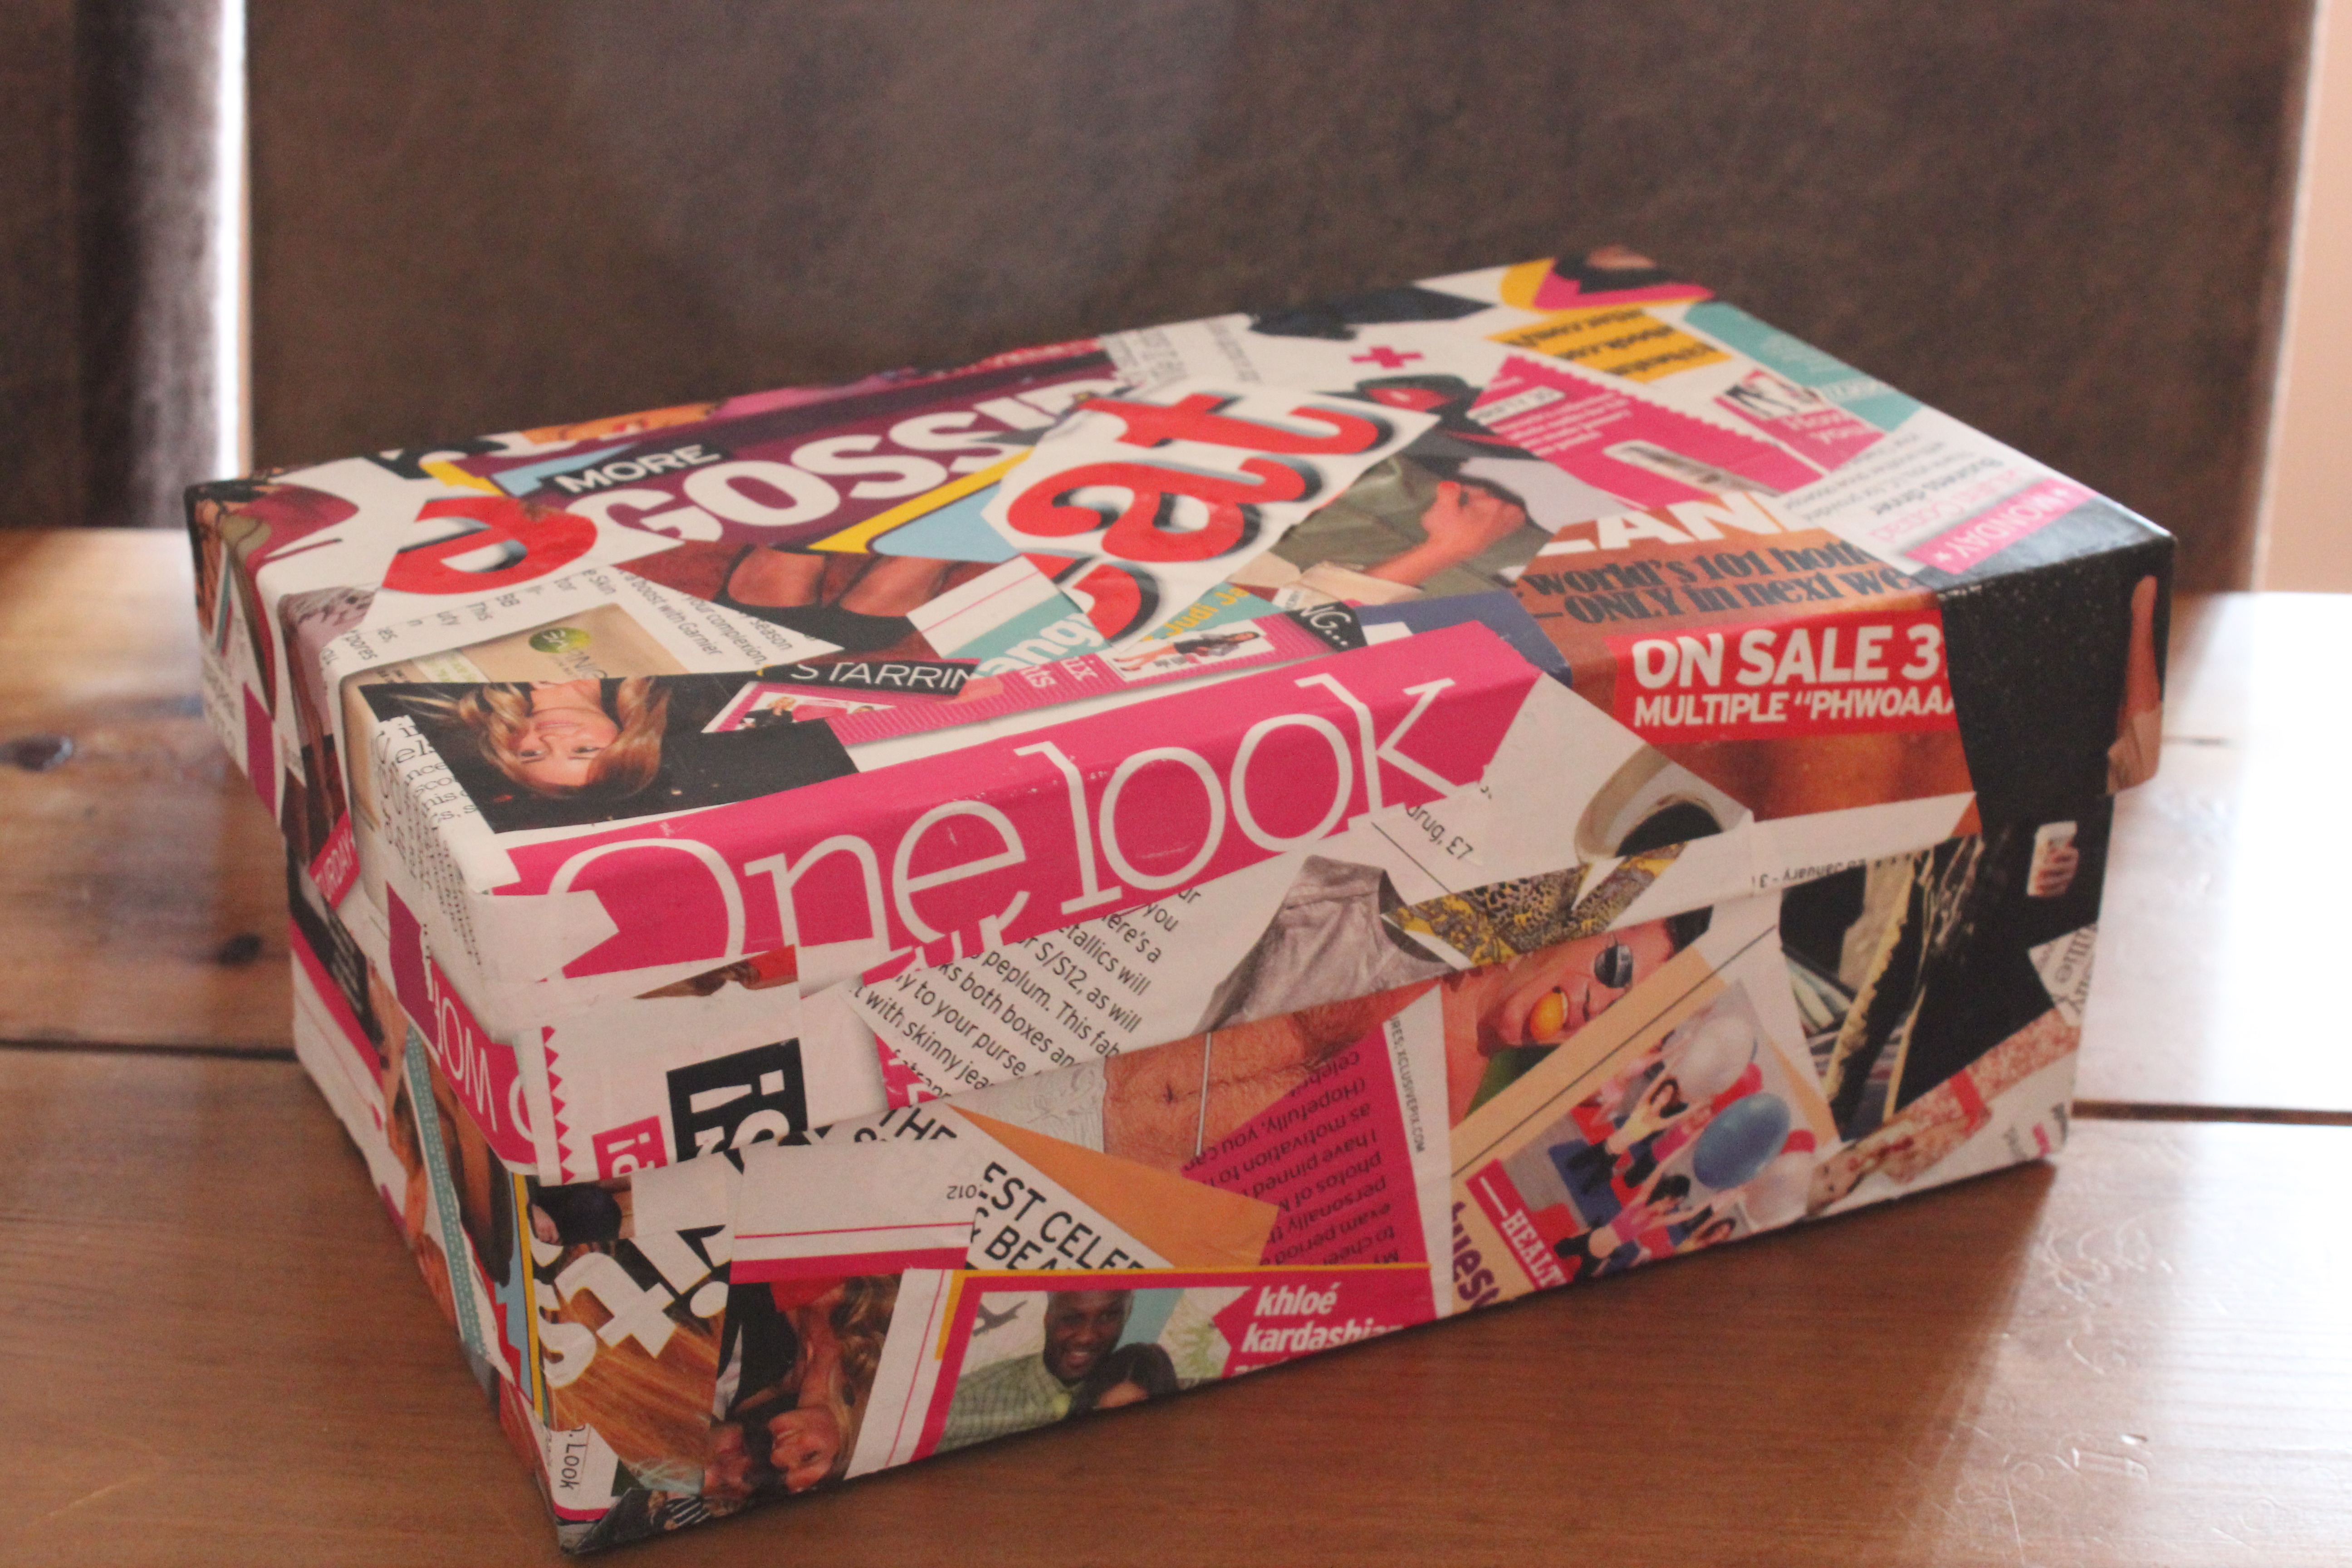 There Are Some Reasonably Priced Boxes About Should You Not Wish To Make Your Own Rather Than A Gift Box Many Bargain Retailers Sell Fabulous Storage